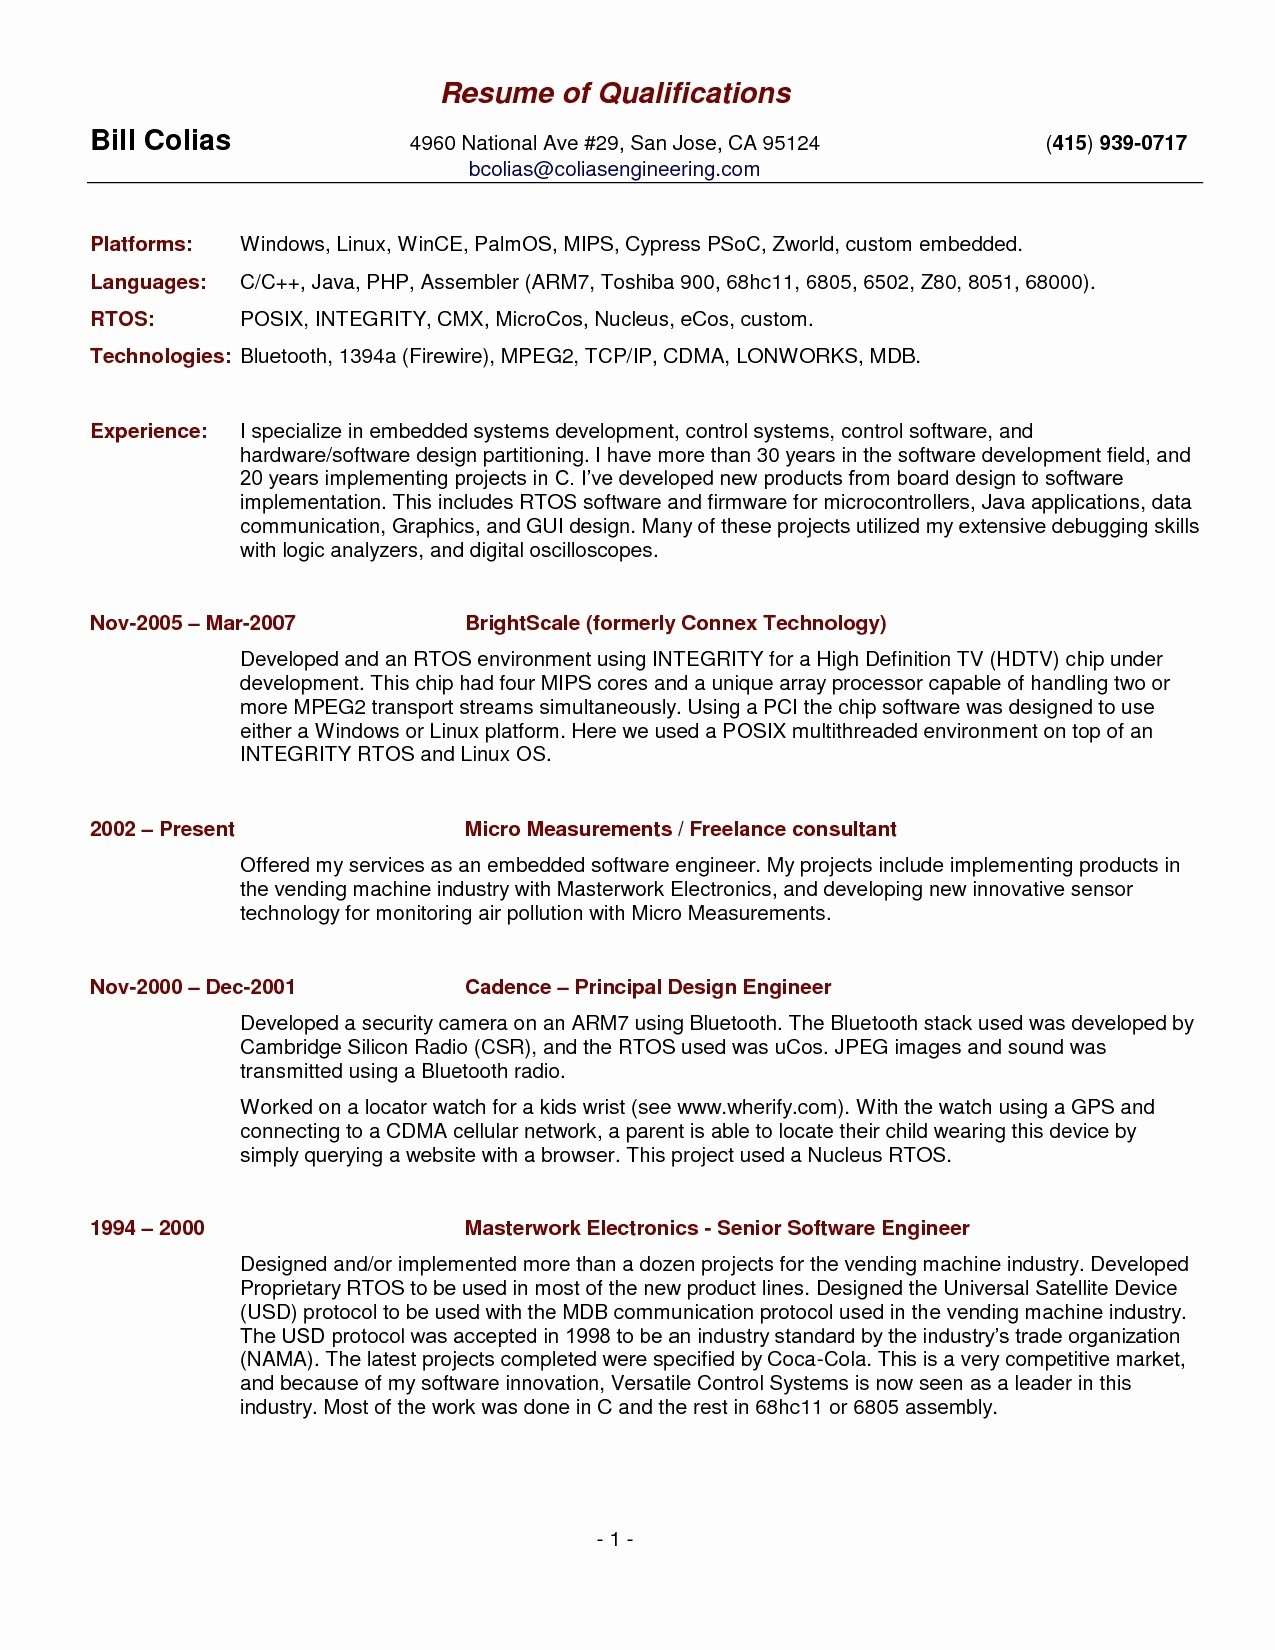 chef resume template example-Chef Resume Sample Awesome Lovely Pr Resume Template Elegant Dictionary Template 0d Archives 2-h